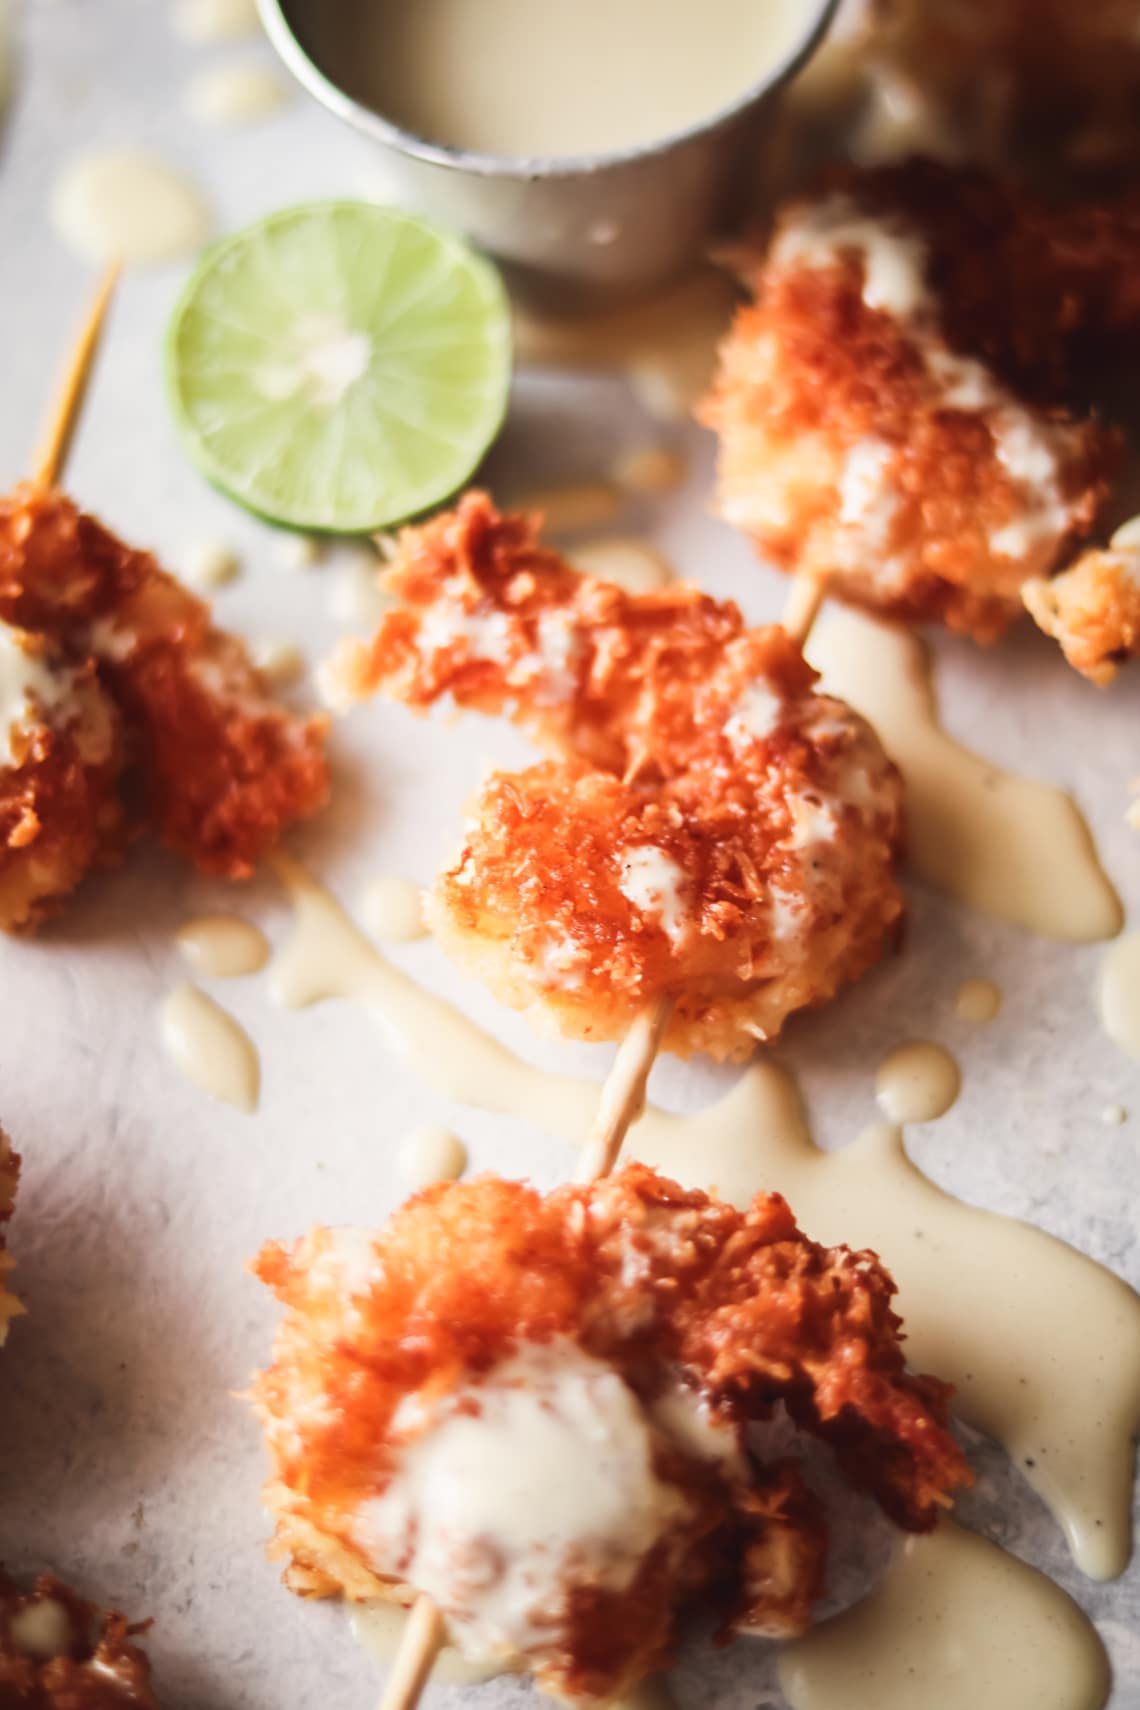 coconut shrimp on wooden skewers with key lime aioli drizzled all over. There are sliced key limes laying around the coconut shrimp on the table and a small sauce cup of the key lime aioli